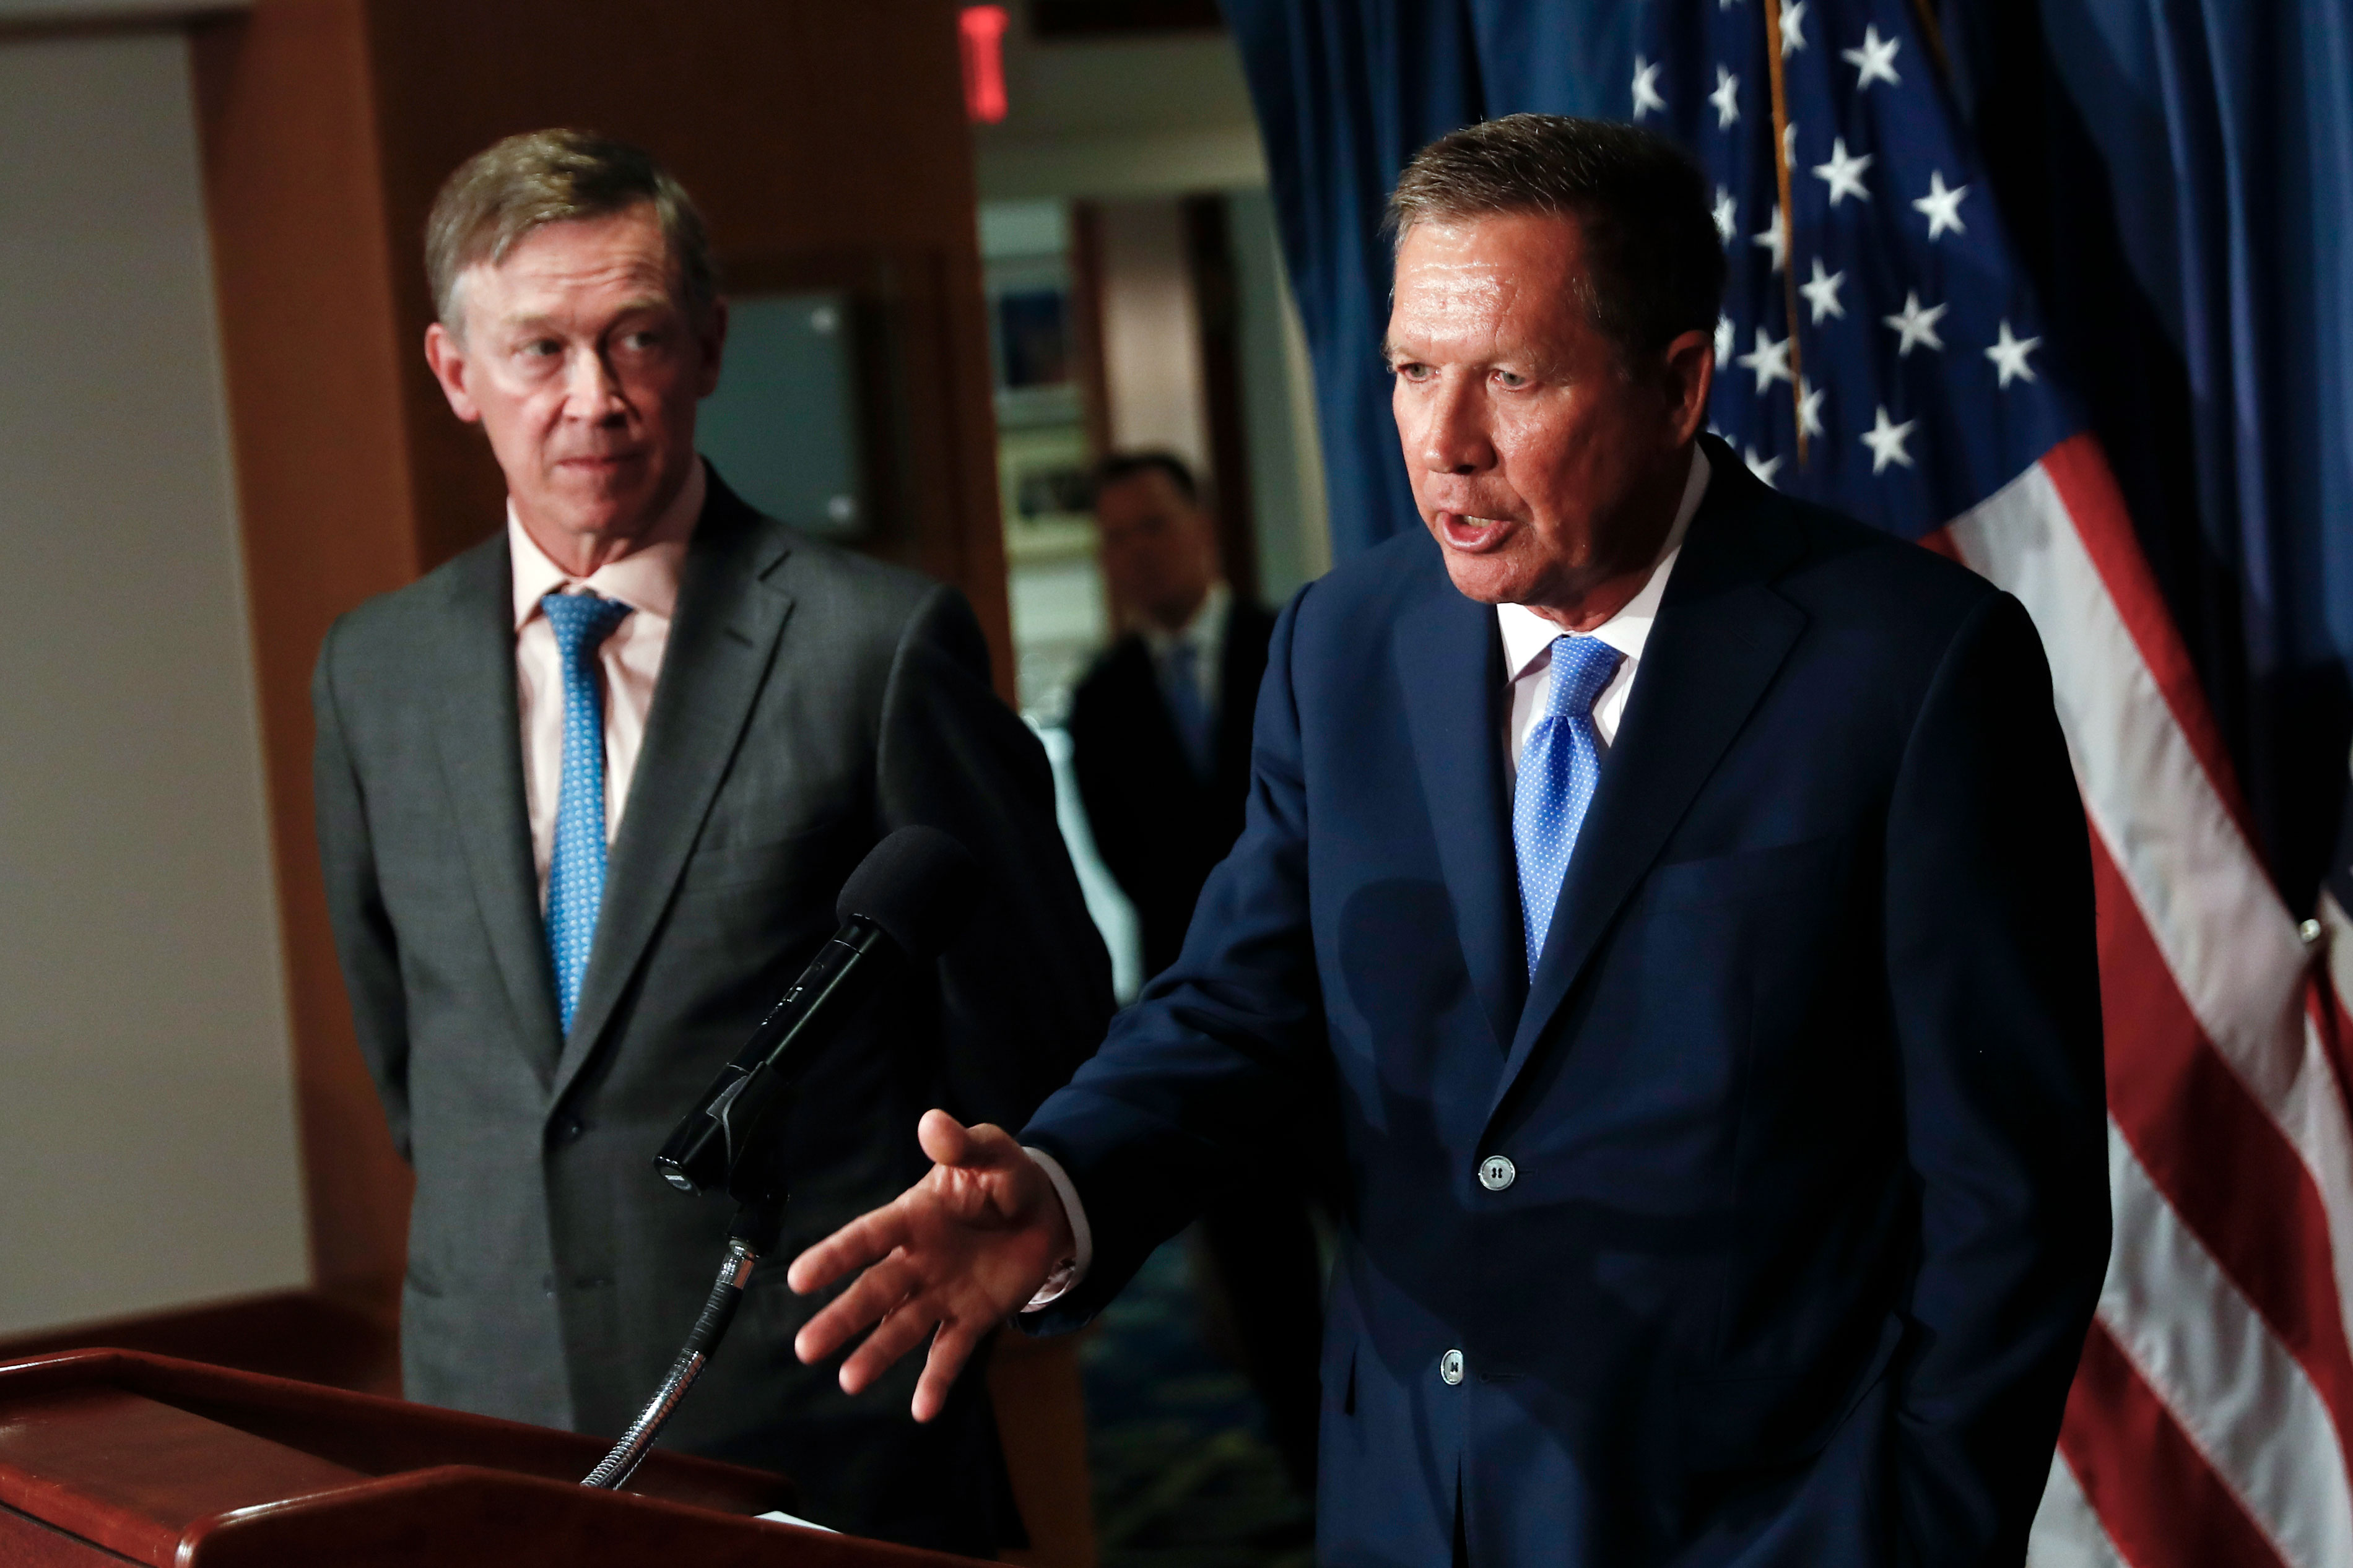 <p>Ohio Gov. John Kasich, right, joined by Colorado Gov. John Hickenlooper, speaks about Republican legislation overhauling the Obama health care law during a news conference at the National Press Club in Washington, D.C., June 27, 2017.</p>